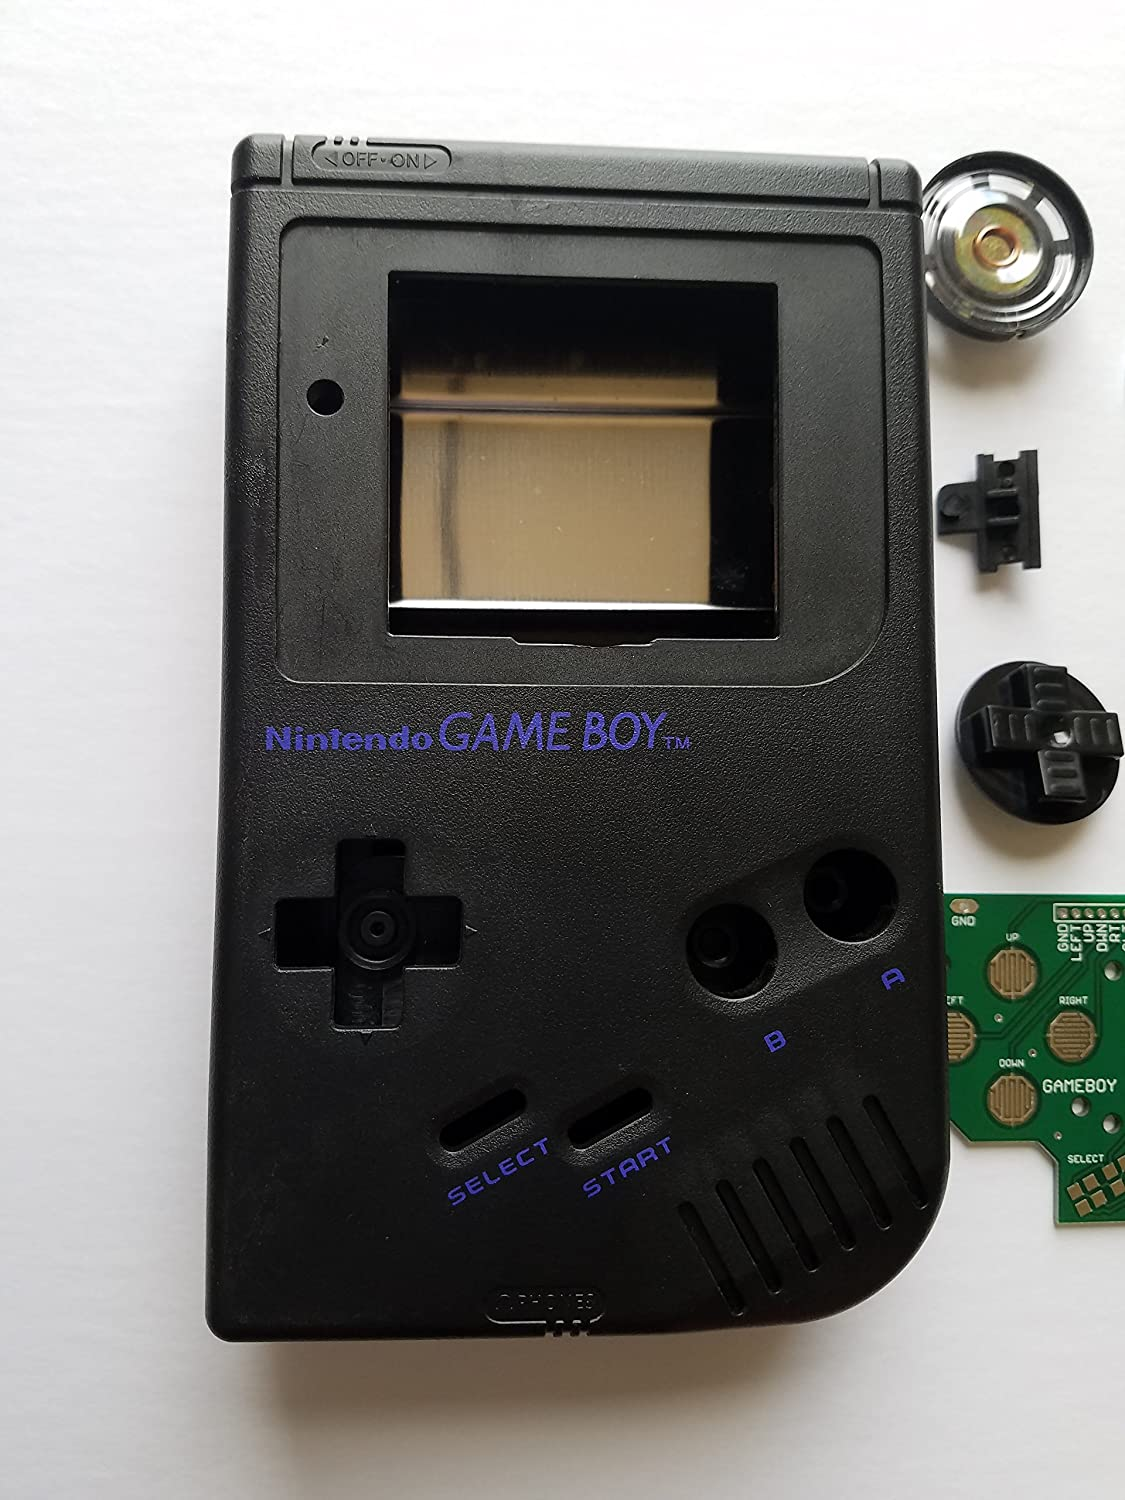 Black Starter Kit Gameboy Zero Dmg 01 4 Button Pcb Diy W Making Systems Circuit Case Speaker Buttons By Atomic Market Computers Accessories